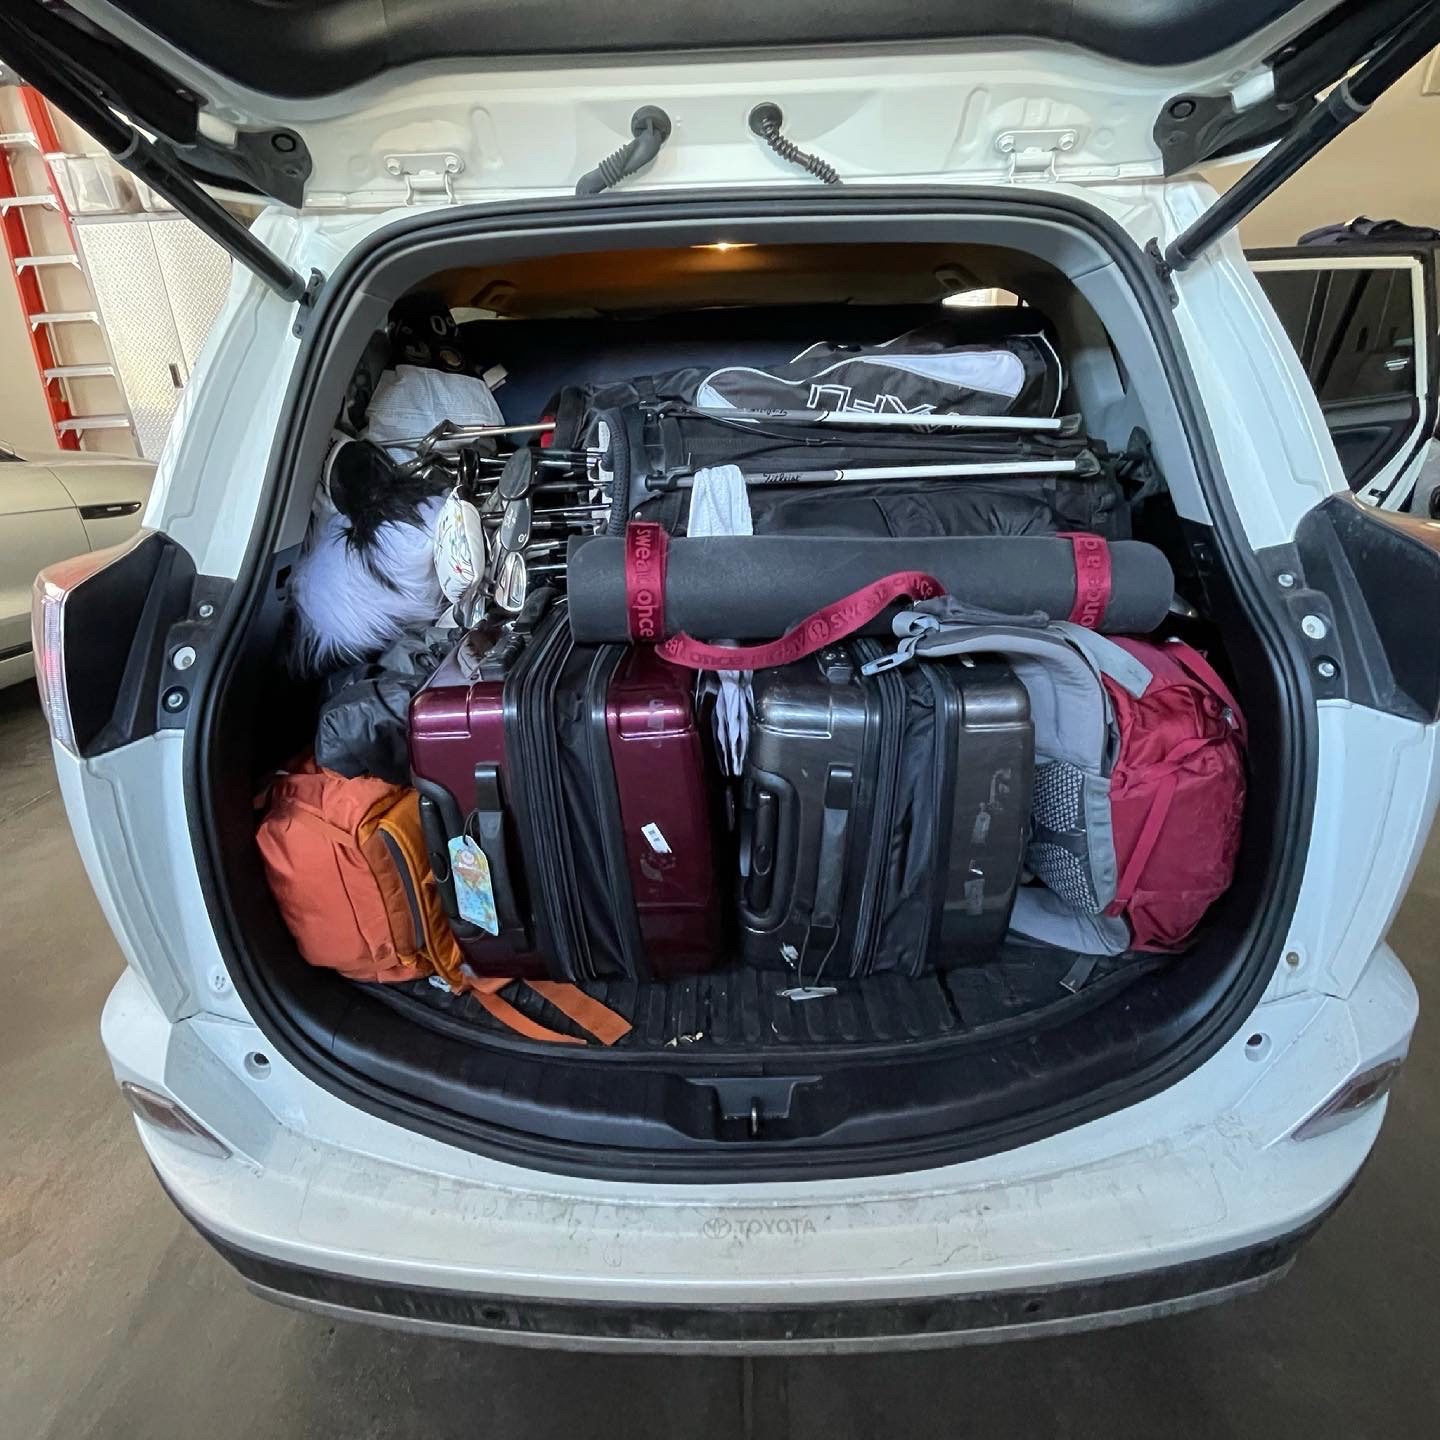 It took us almost an hour to figure out how to fit all of our stuff into the car the first time we packed it. We will be shedding possessions throughout the first few months of our journey, but we wanted to bring everything we might need to start.